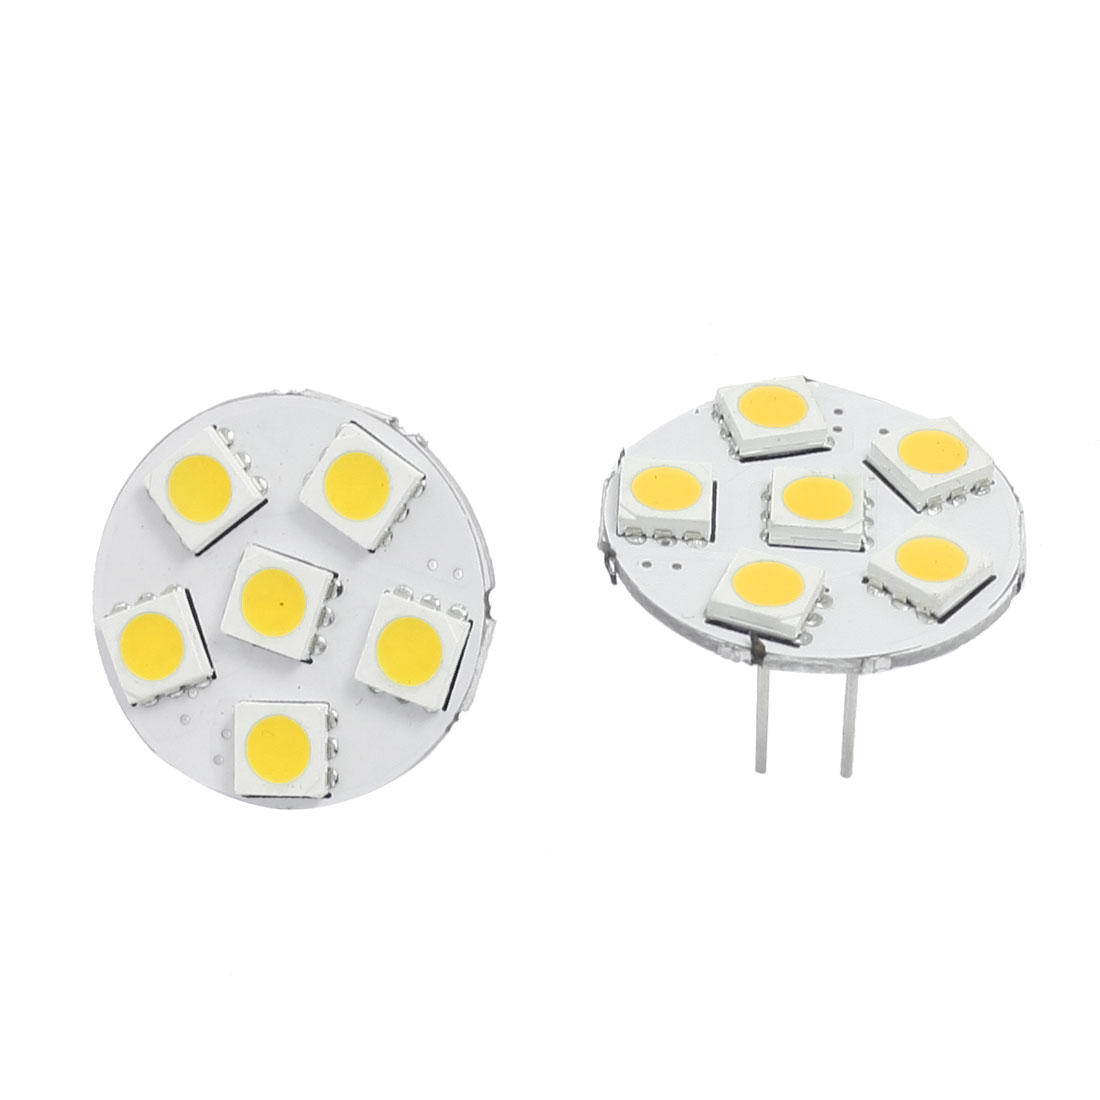 2 Pcs Car G4 Warm White 5050 SMD 6-LED Bulb Light Dashboard Lamp